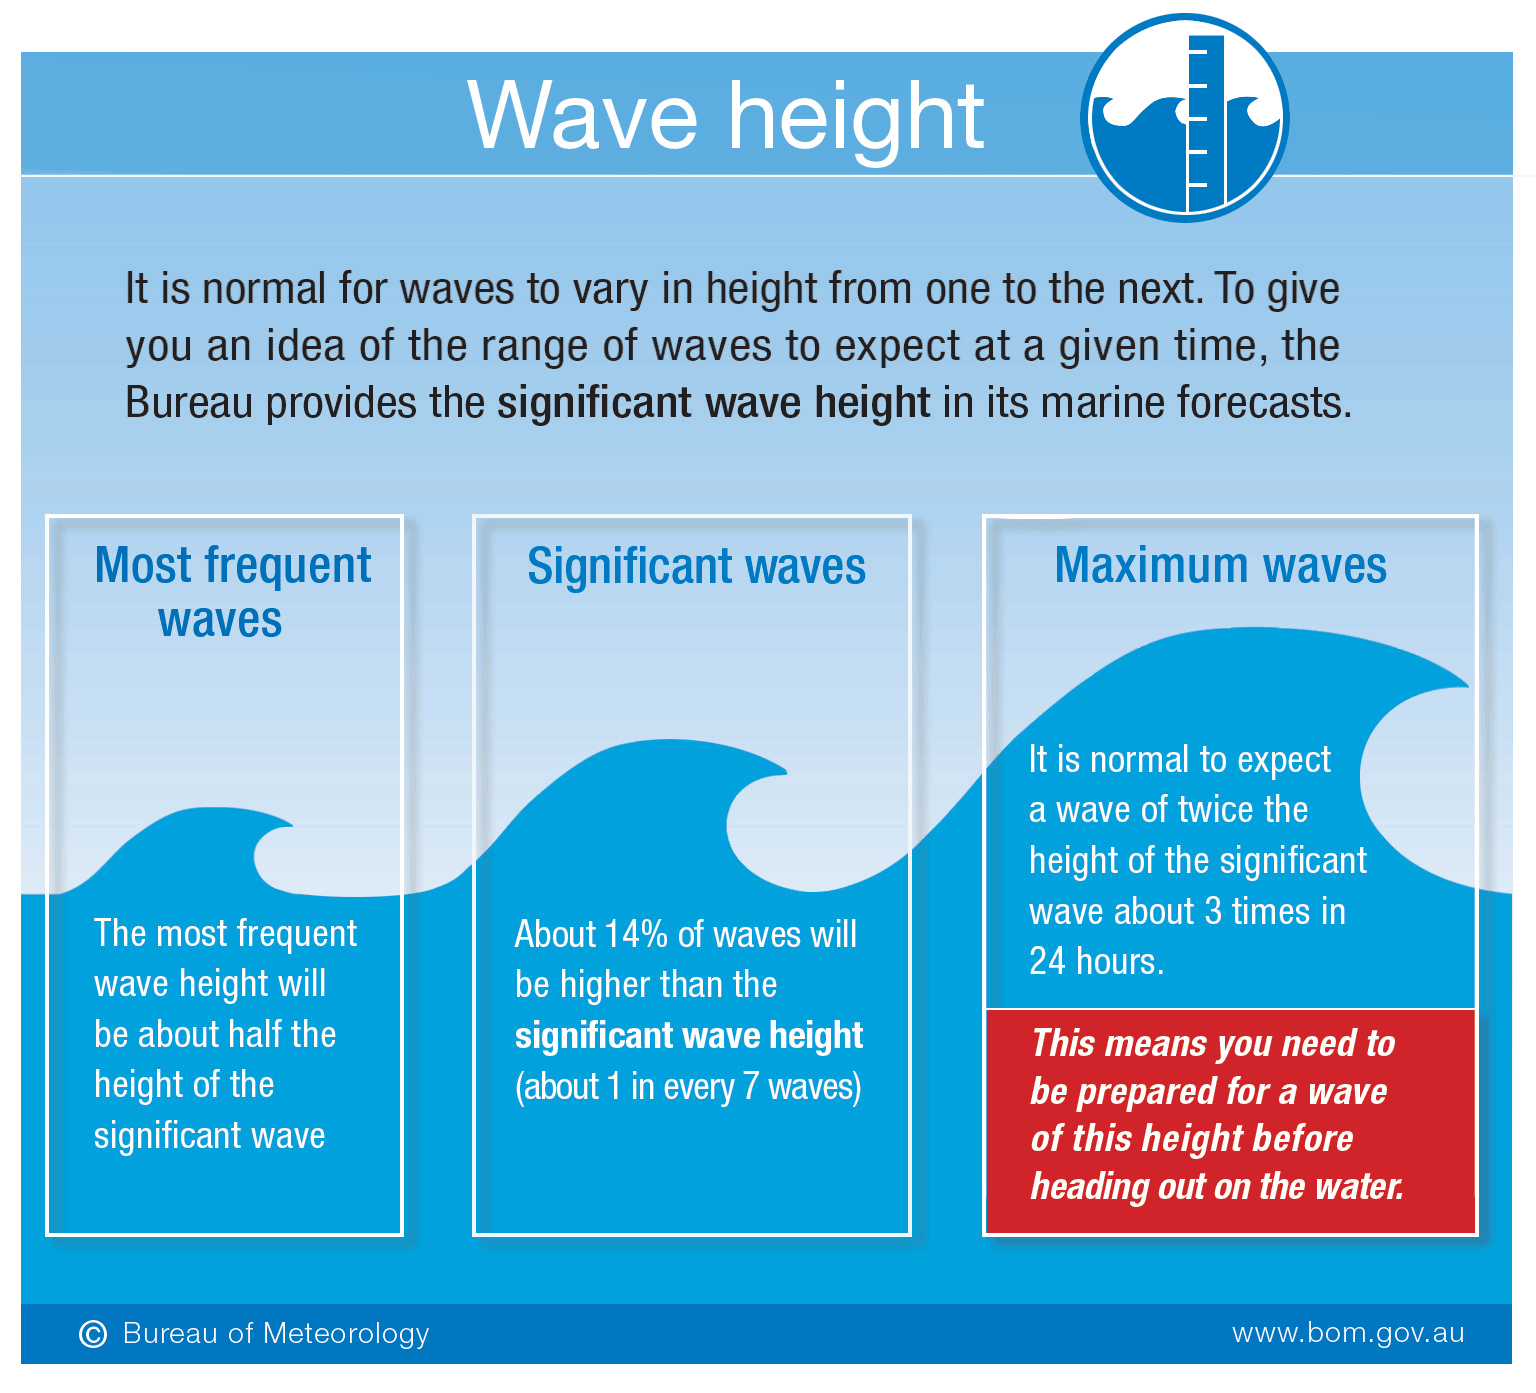 It is normal for waves to vary in height from one to the next